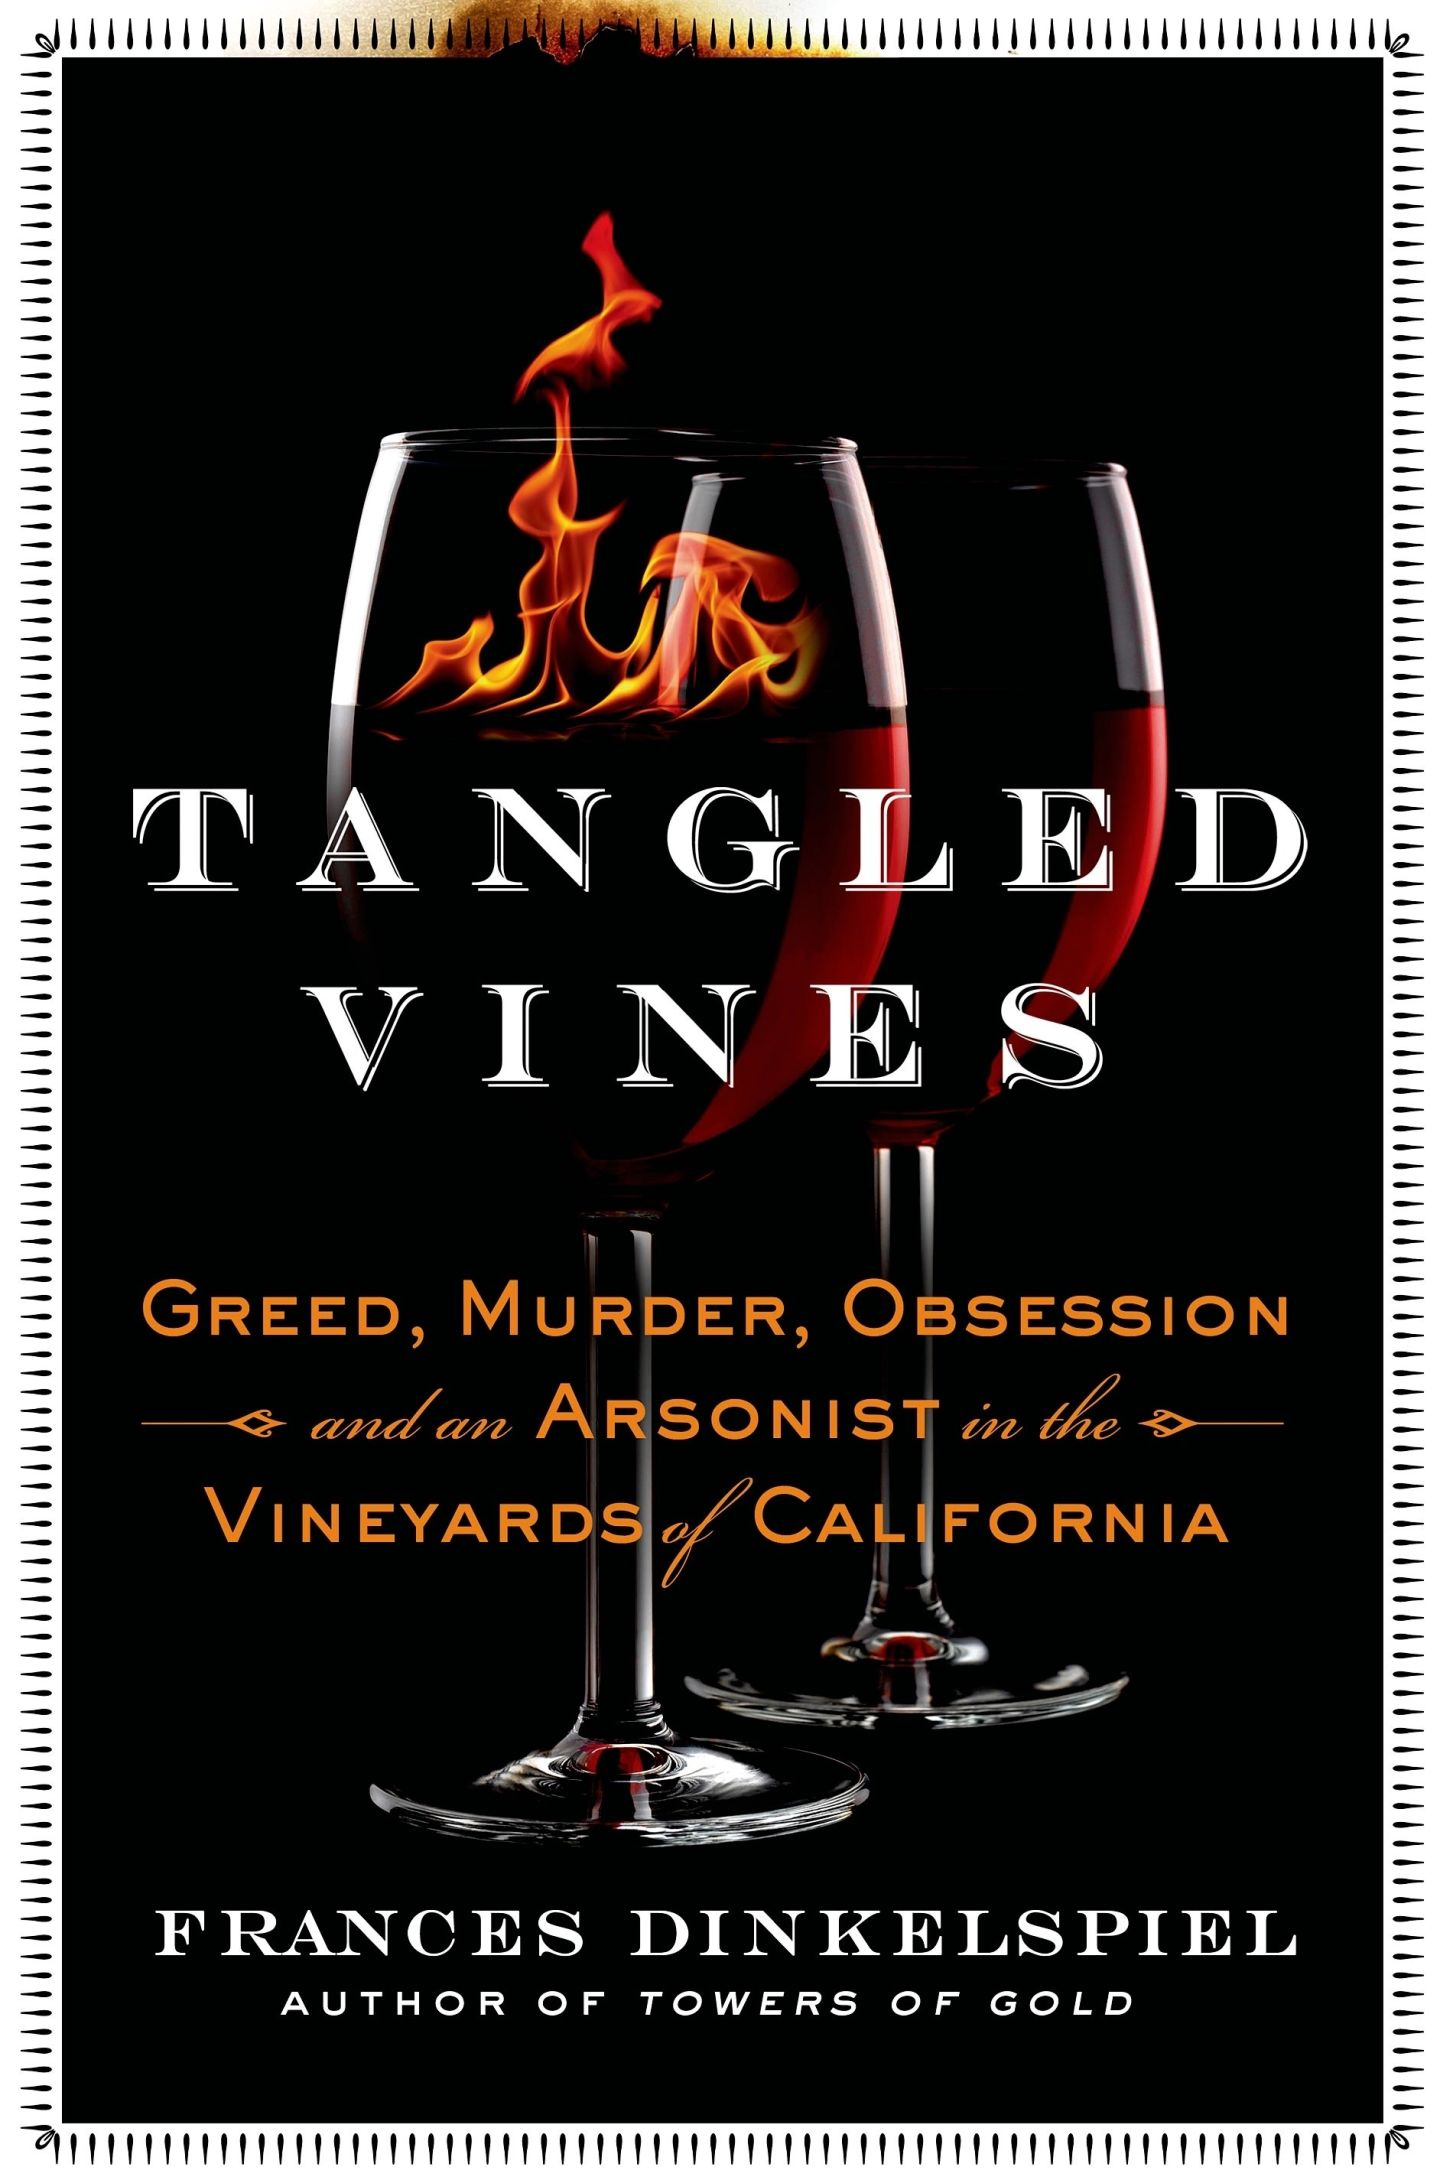 Tangled Vines: Greed, Murder, Obsession, and an Arsonist in the Vineyards of California by Frances Dinkelspiel